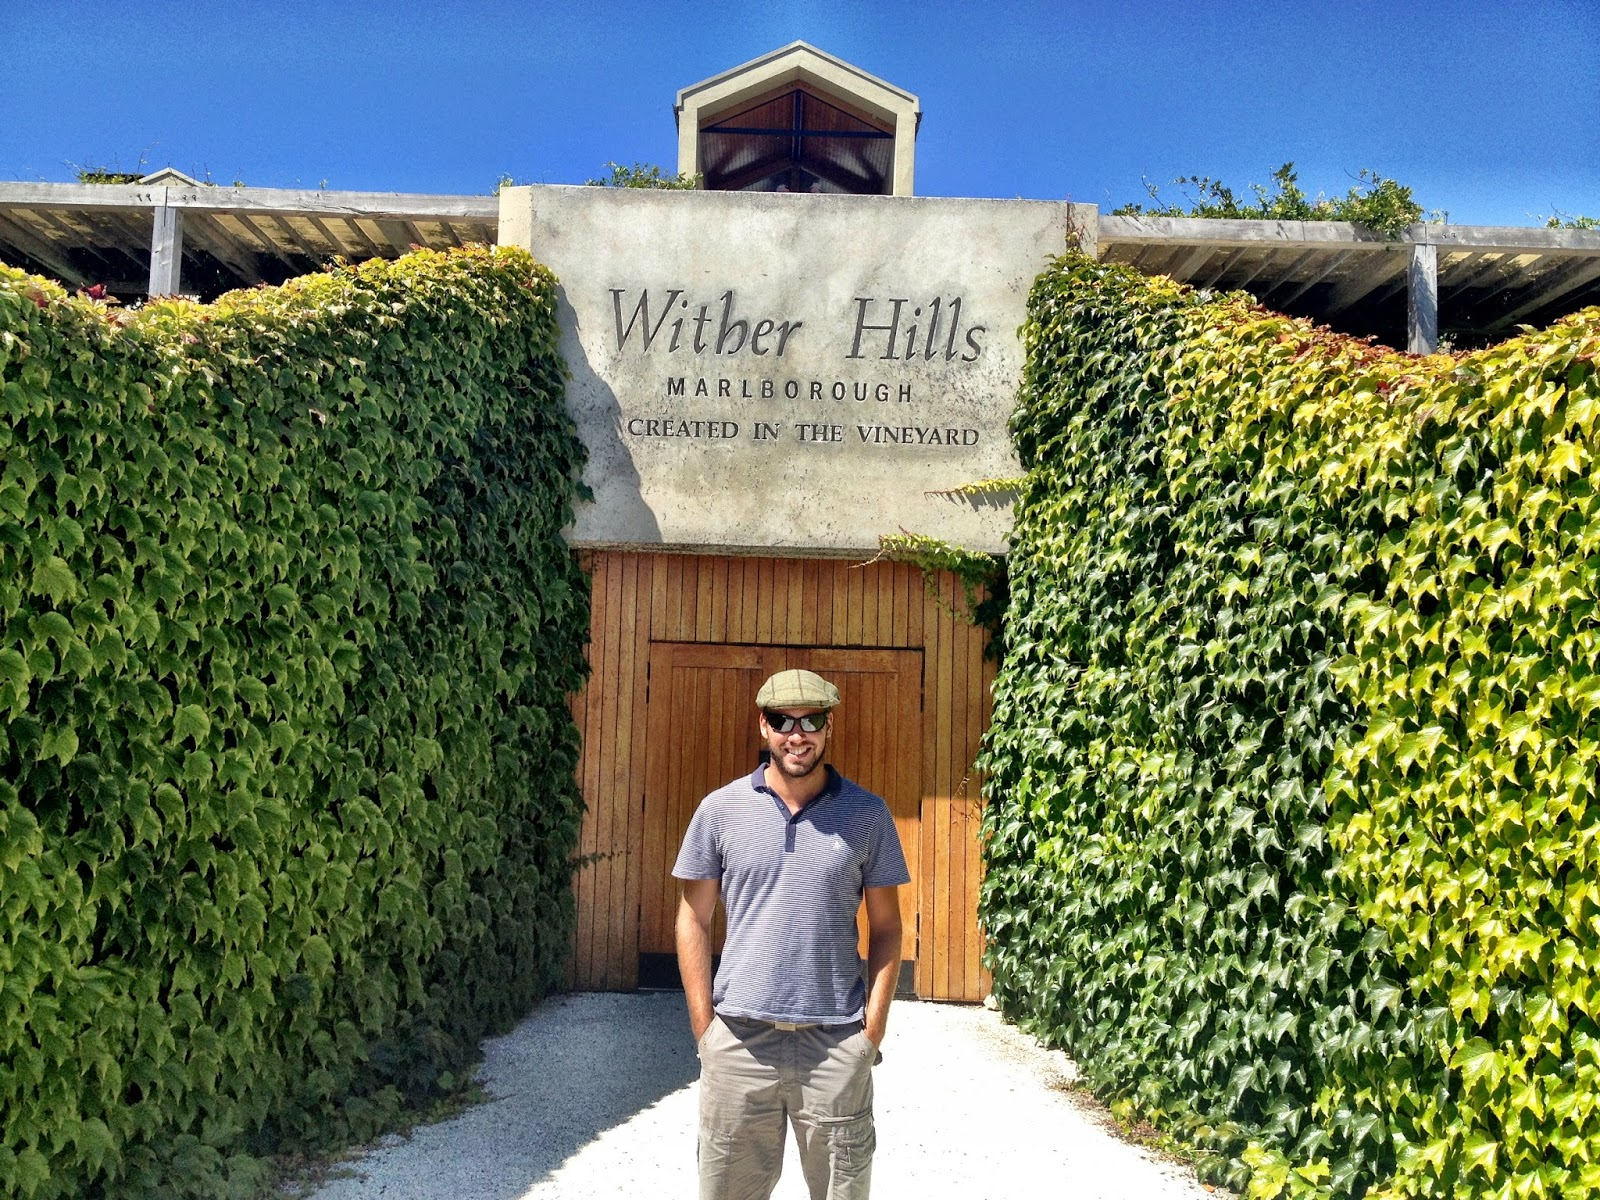 Outside Wither Hills vineyard, Marlborough, New Zealand